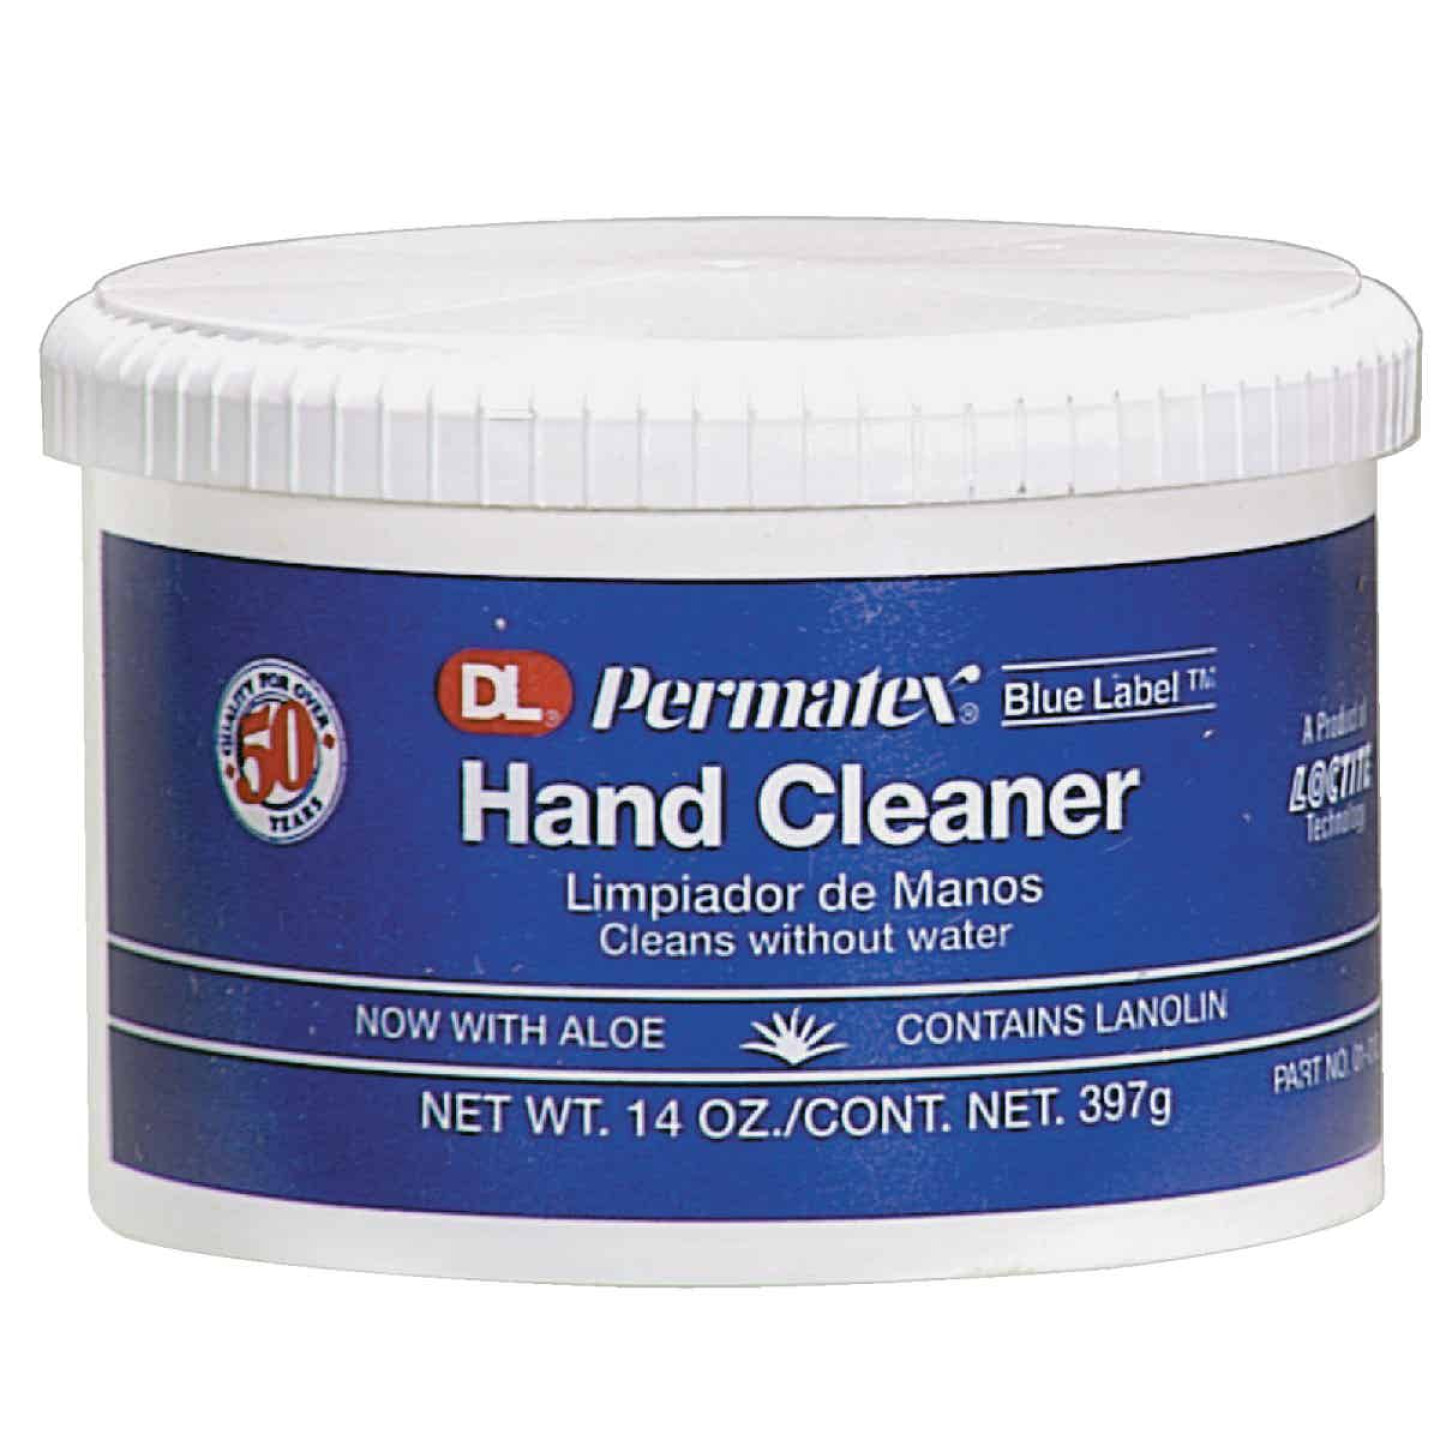 PERMATEX Smooth 14 Oz. Hand Cleaner Image 1